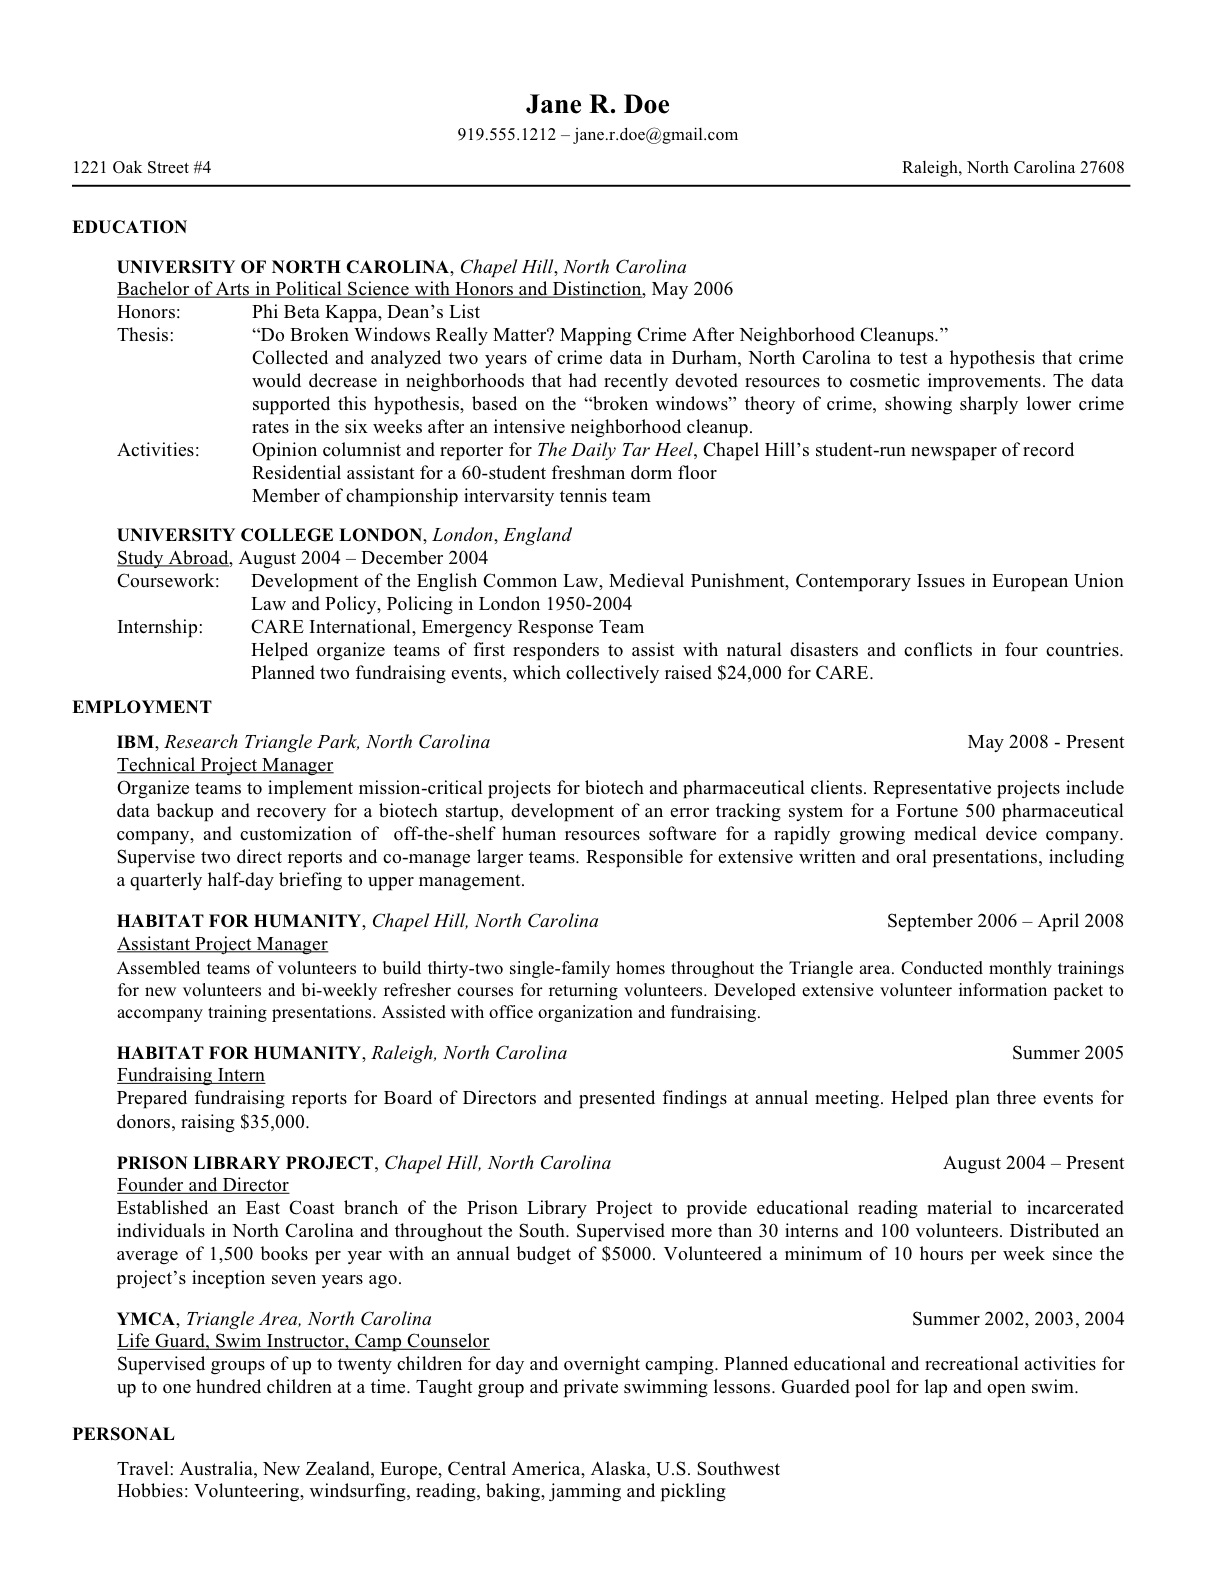 Resume for law school acurnamedia resume for law school toneelgroepblik Gallery